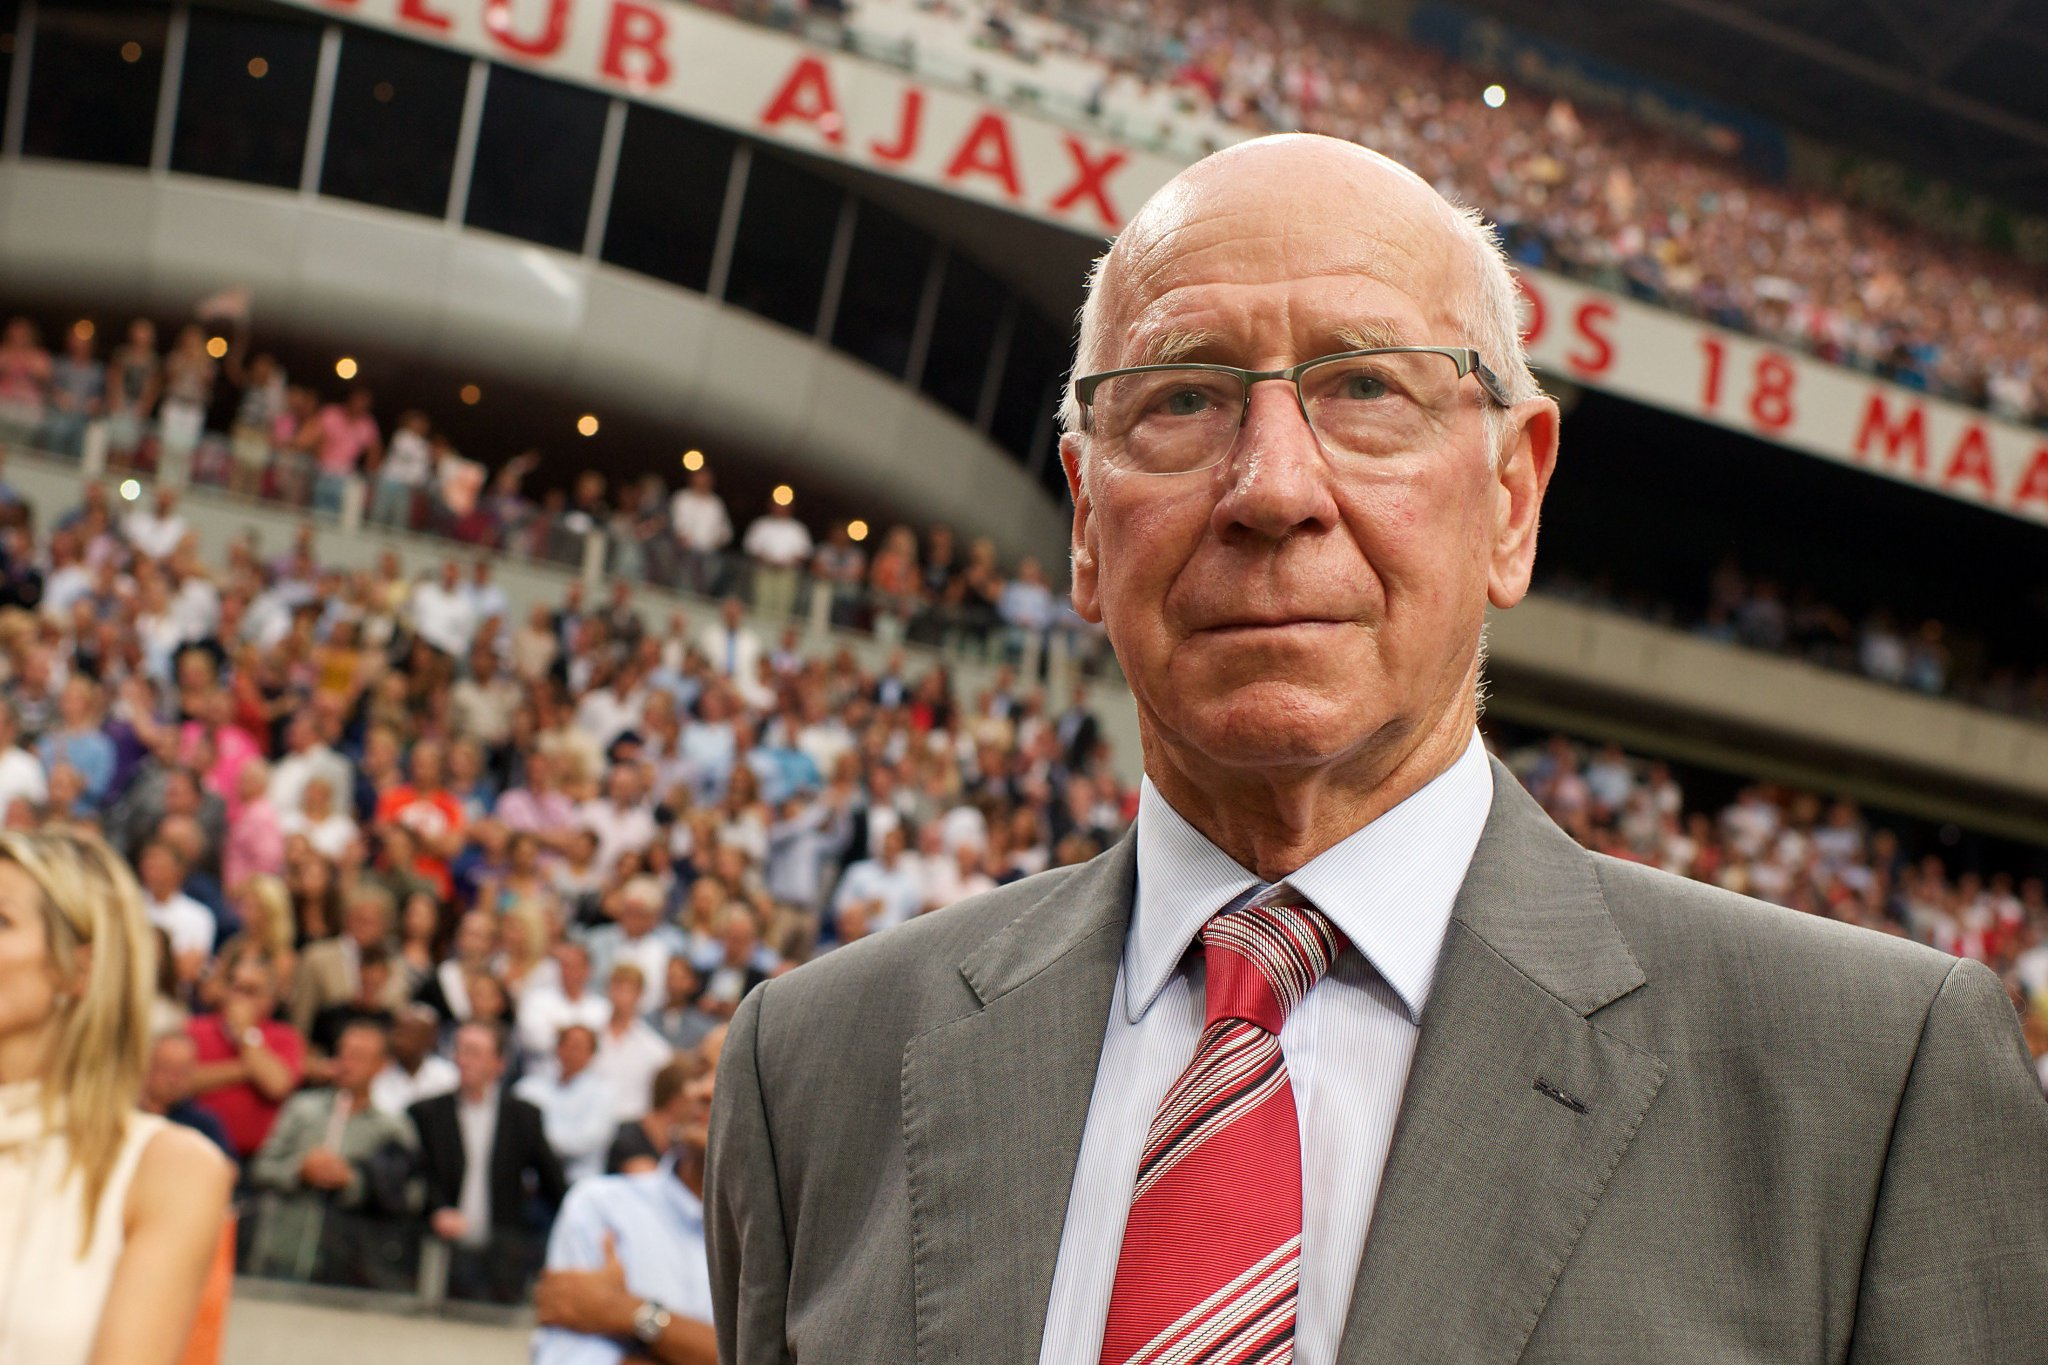 758 games 249 goals  Happy birthday to Manchester United legend, Sir Bobby Charlton.